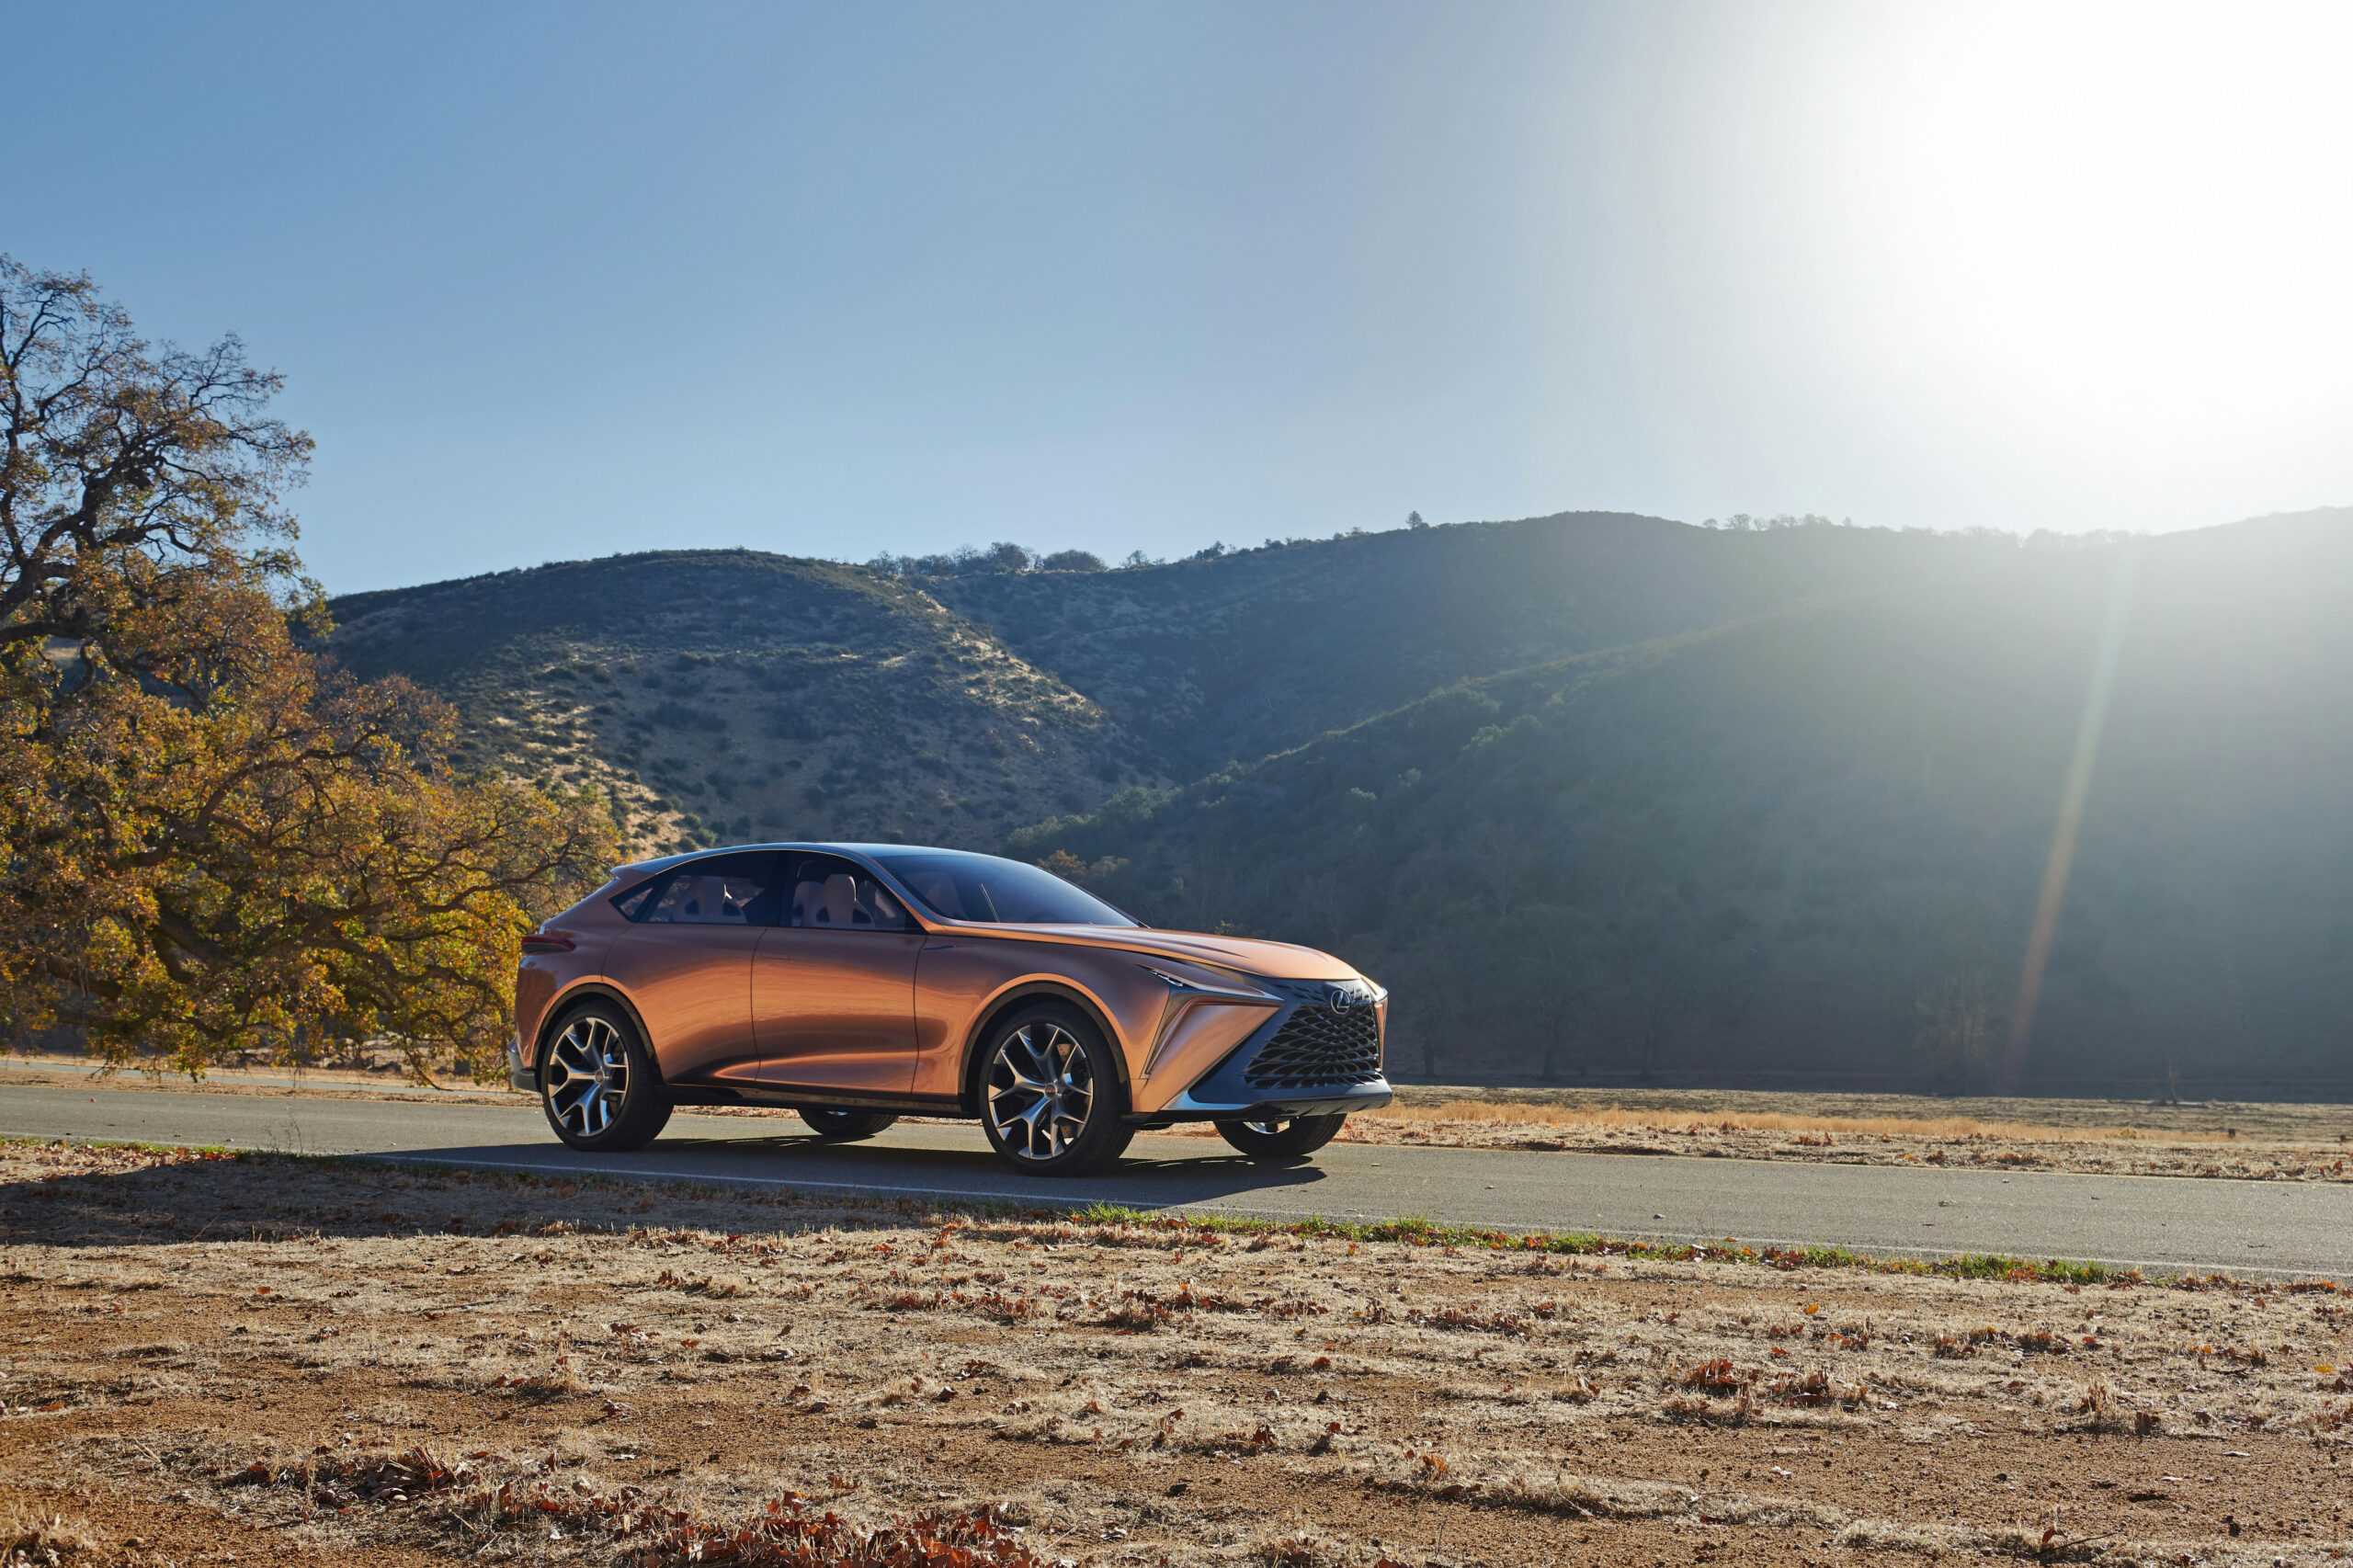 Price and Release date When Will The 2022 Lexus Be Available